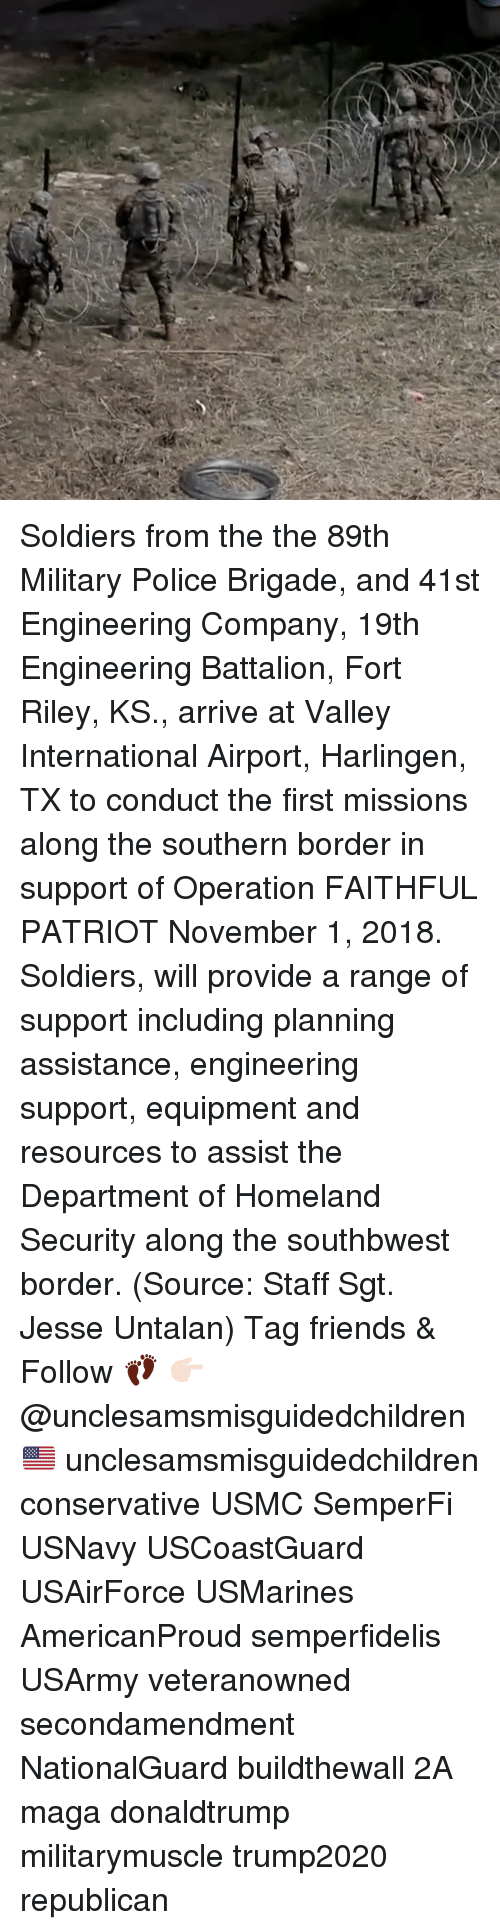 donaldtrump: Soldiers from the the 89th Military Police Brigade, and 41st Engineering Company, 19th Engineering Battalion, Fort Riley, KS., arrive at Valley International Airport, Harlingen, TX to conduct the first missions along the southern border in support of Operation FAITHFUL PATRIOT November 1, 2018. Soldiers, will provide a range of support including planning assistance, engineering support, equipment and resources to assist the Department of Homeland Security along the southbwest border. (Source: Staff Sgt. Jesse Untalan) Tag friends & Follow 👣 👉🏻 @unclesamsmisguidedchildren 🇺🇸 unclesamsmisguidedchildren conservative USMC SemperFi USNavy USCoastGuard USAirForce USMarines AmericanProud semperfidelis USArmy veteranowned secondamendment NationalGuard buildthewall 2A maga donaldtrump militarymuscle trump2020 republican